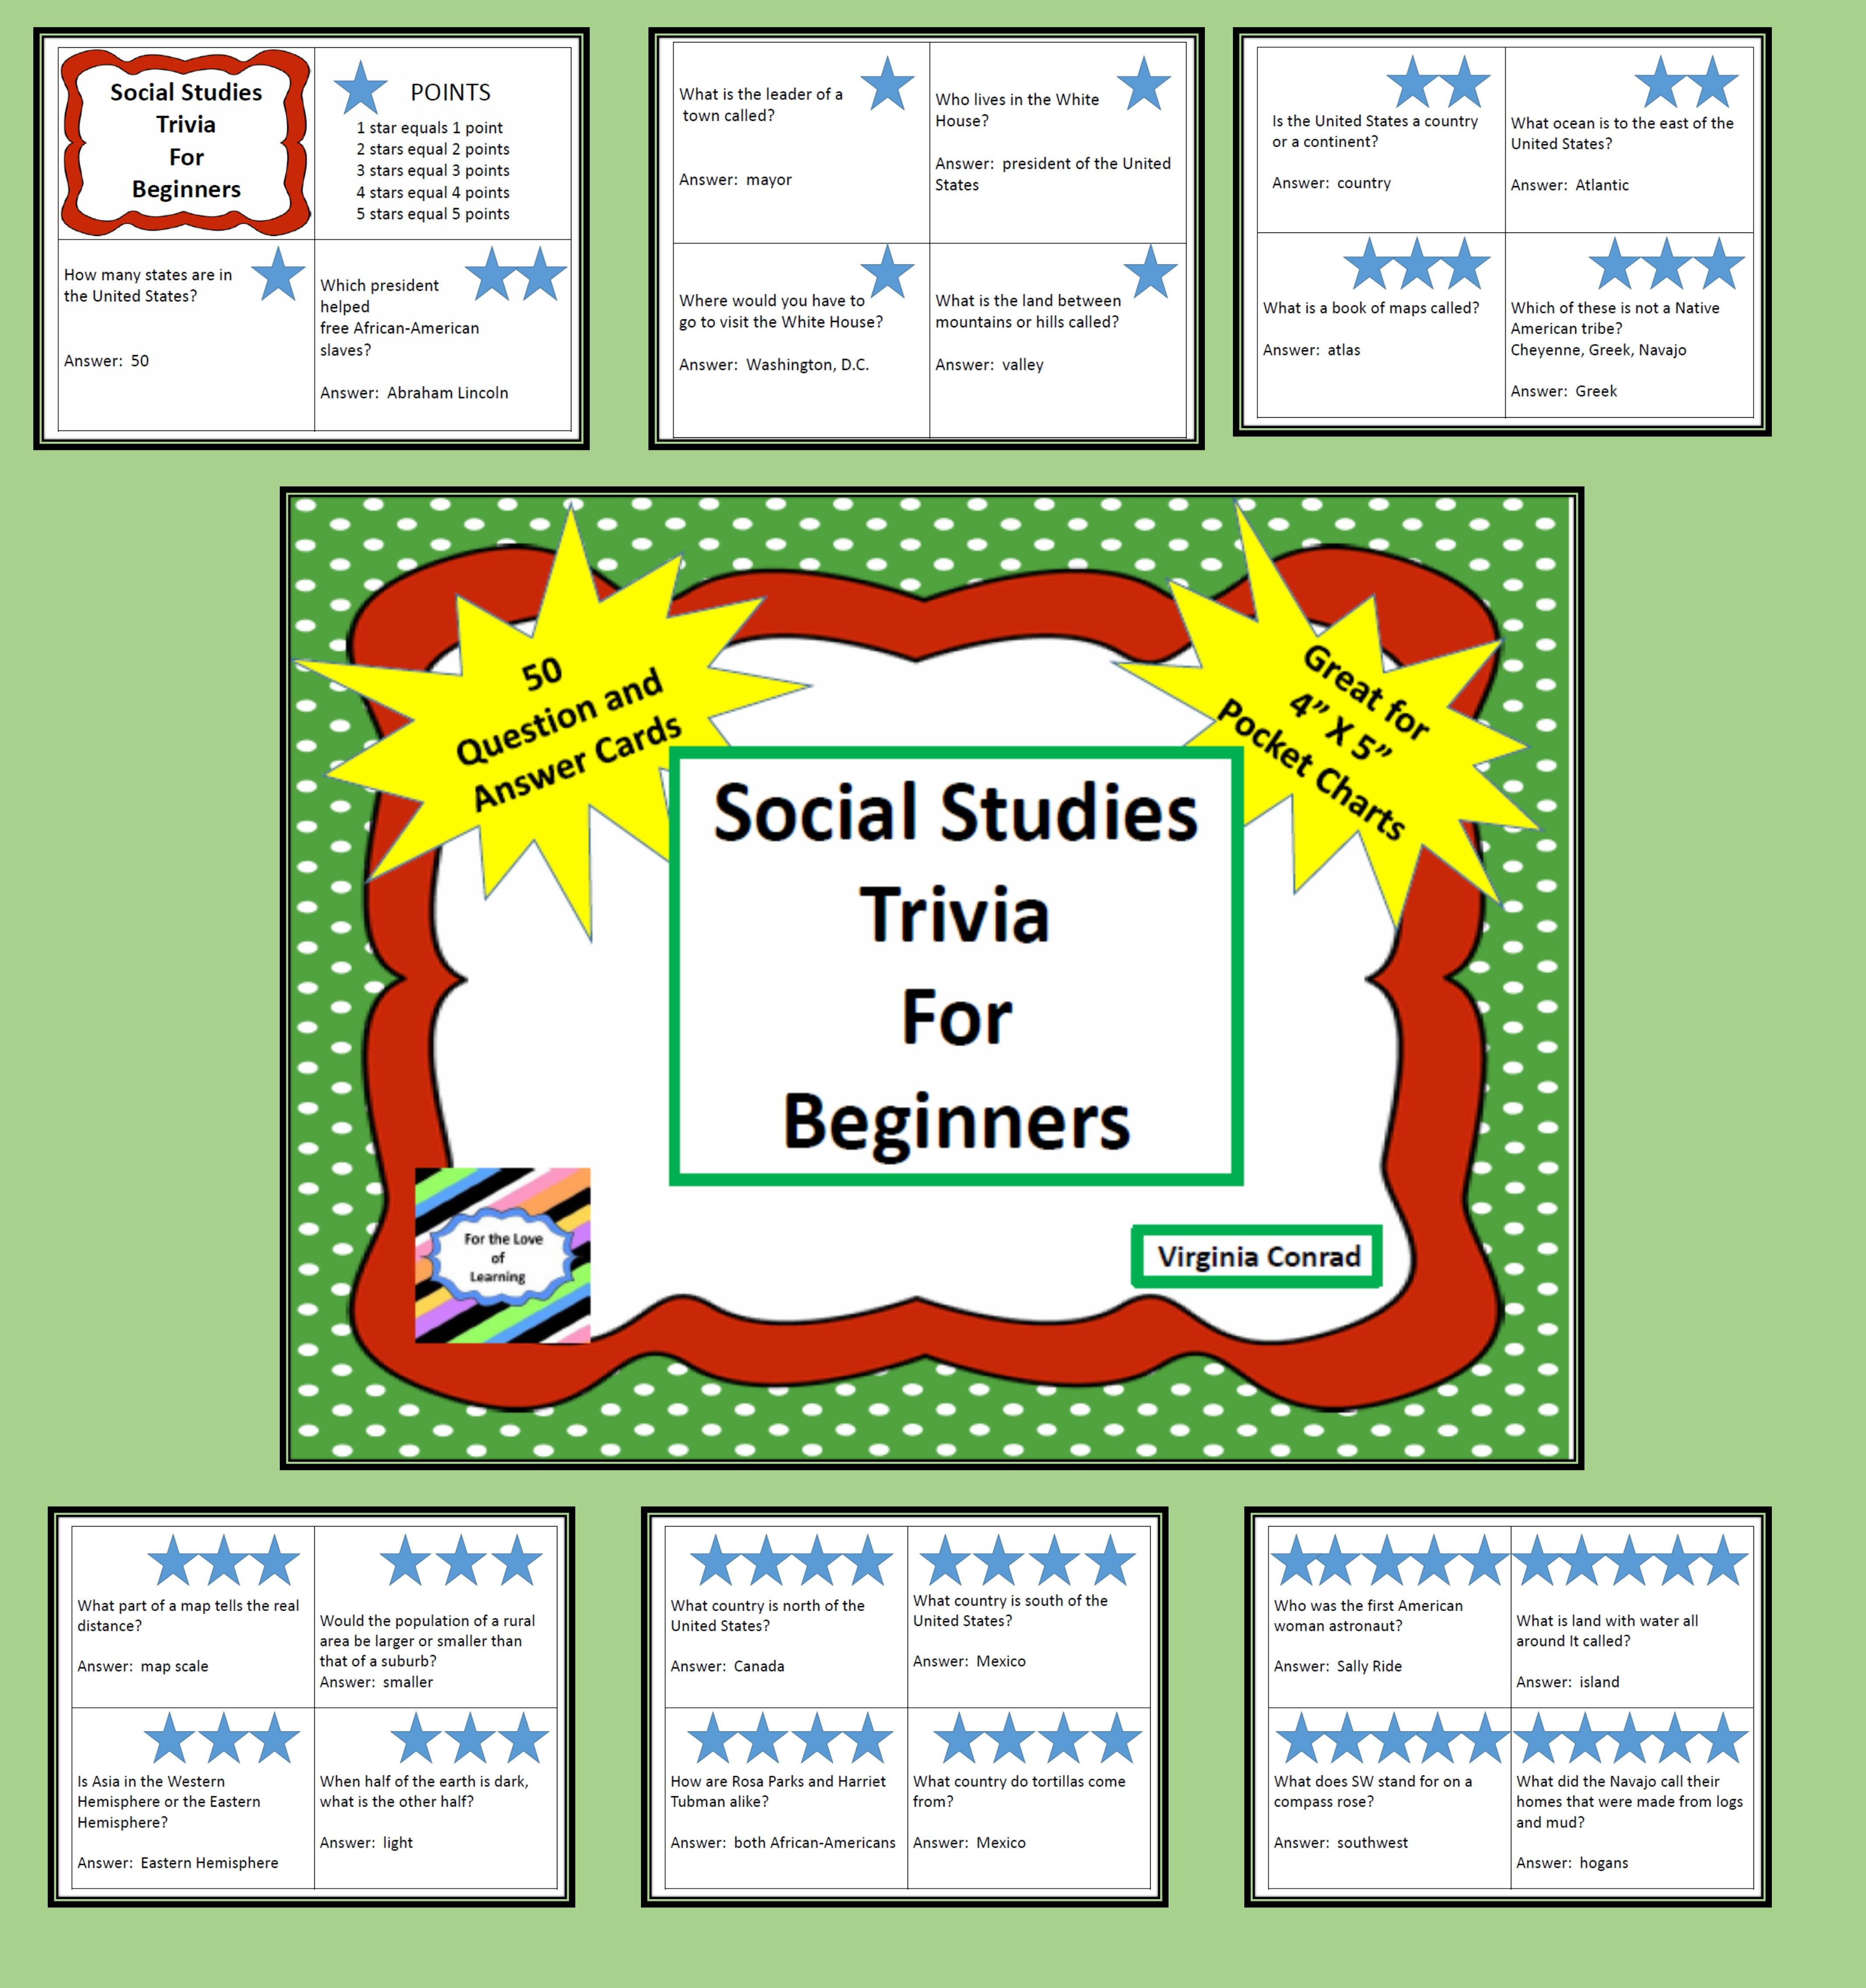 Social Stu S Trivia For Beginners 50 Question And